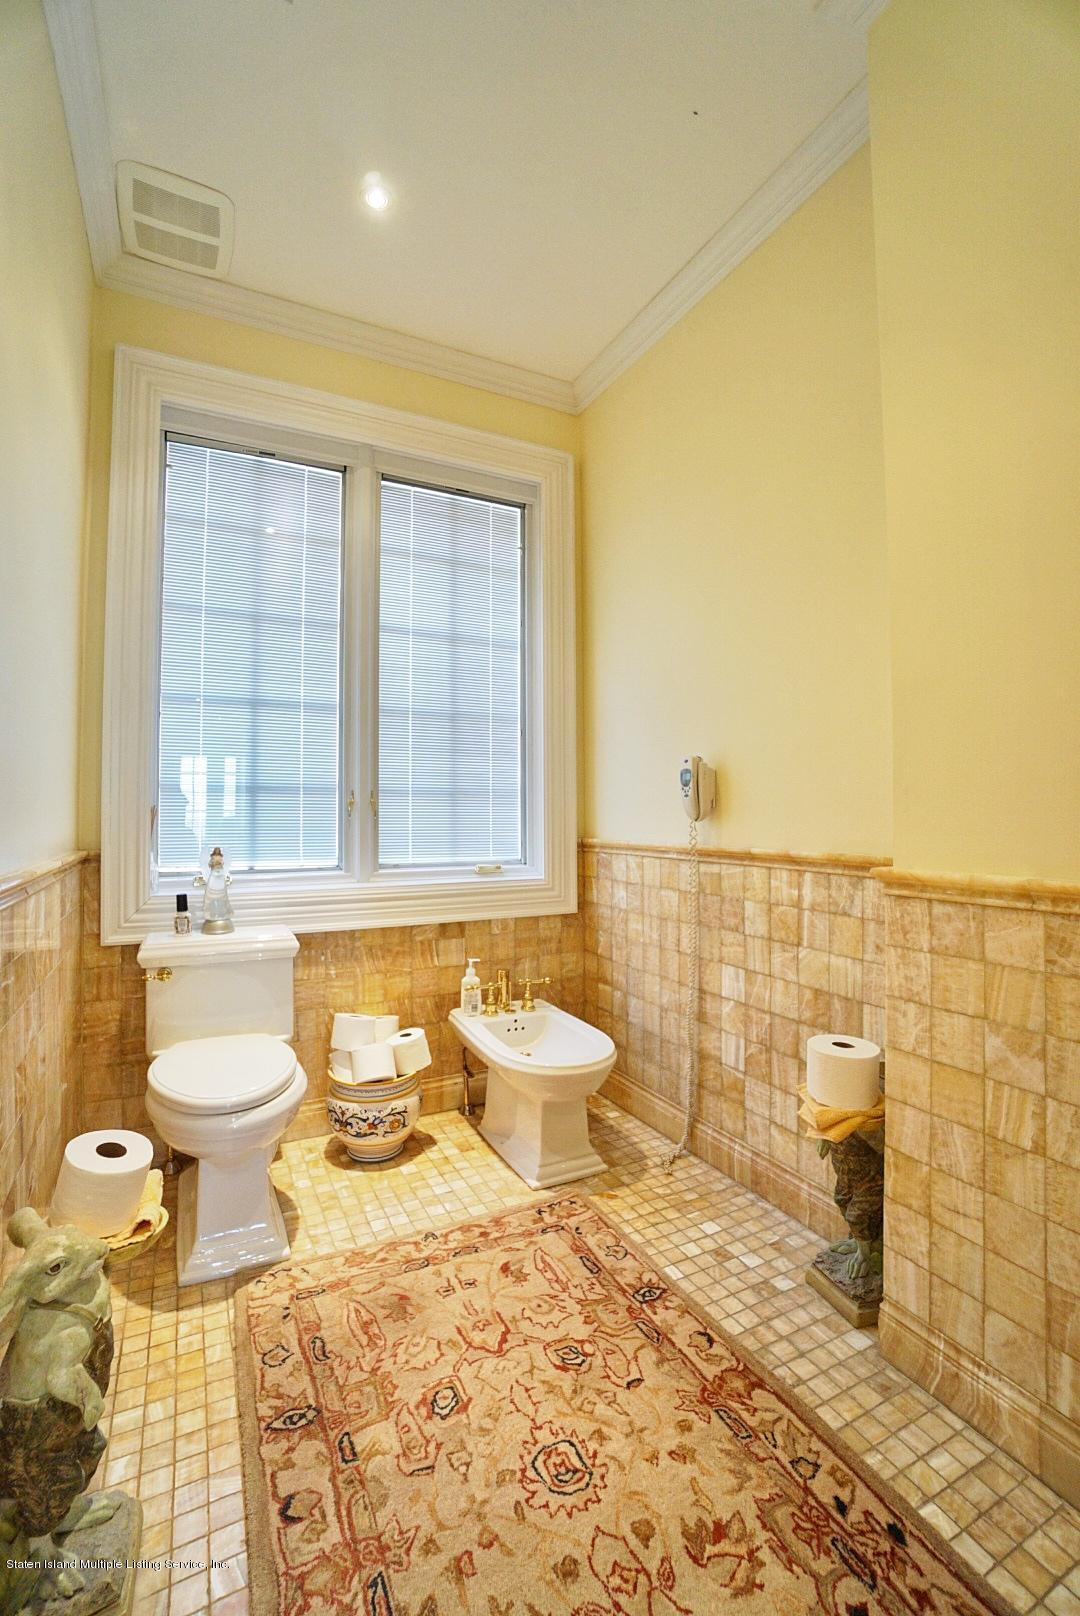 129 Coverly Avenue,Staten Island,New York,10301,United States,3 Bedrooms Bedrooms,10 Rooms Rooms,7 BathroomsBathrooms,Residential,Coverly,1132948